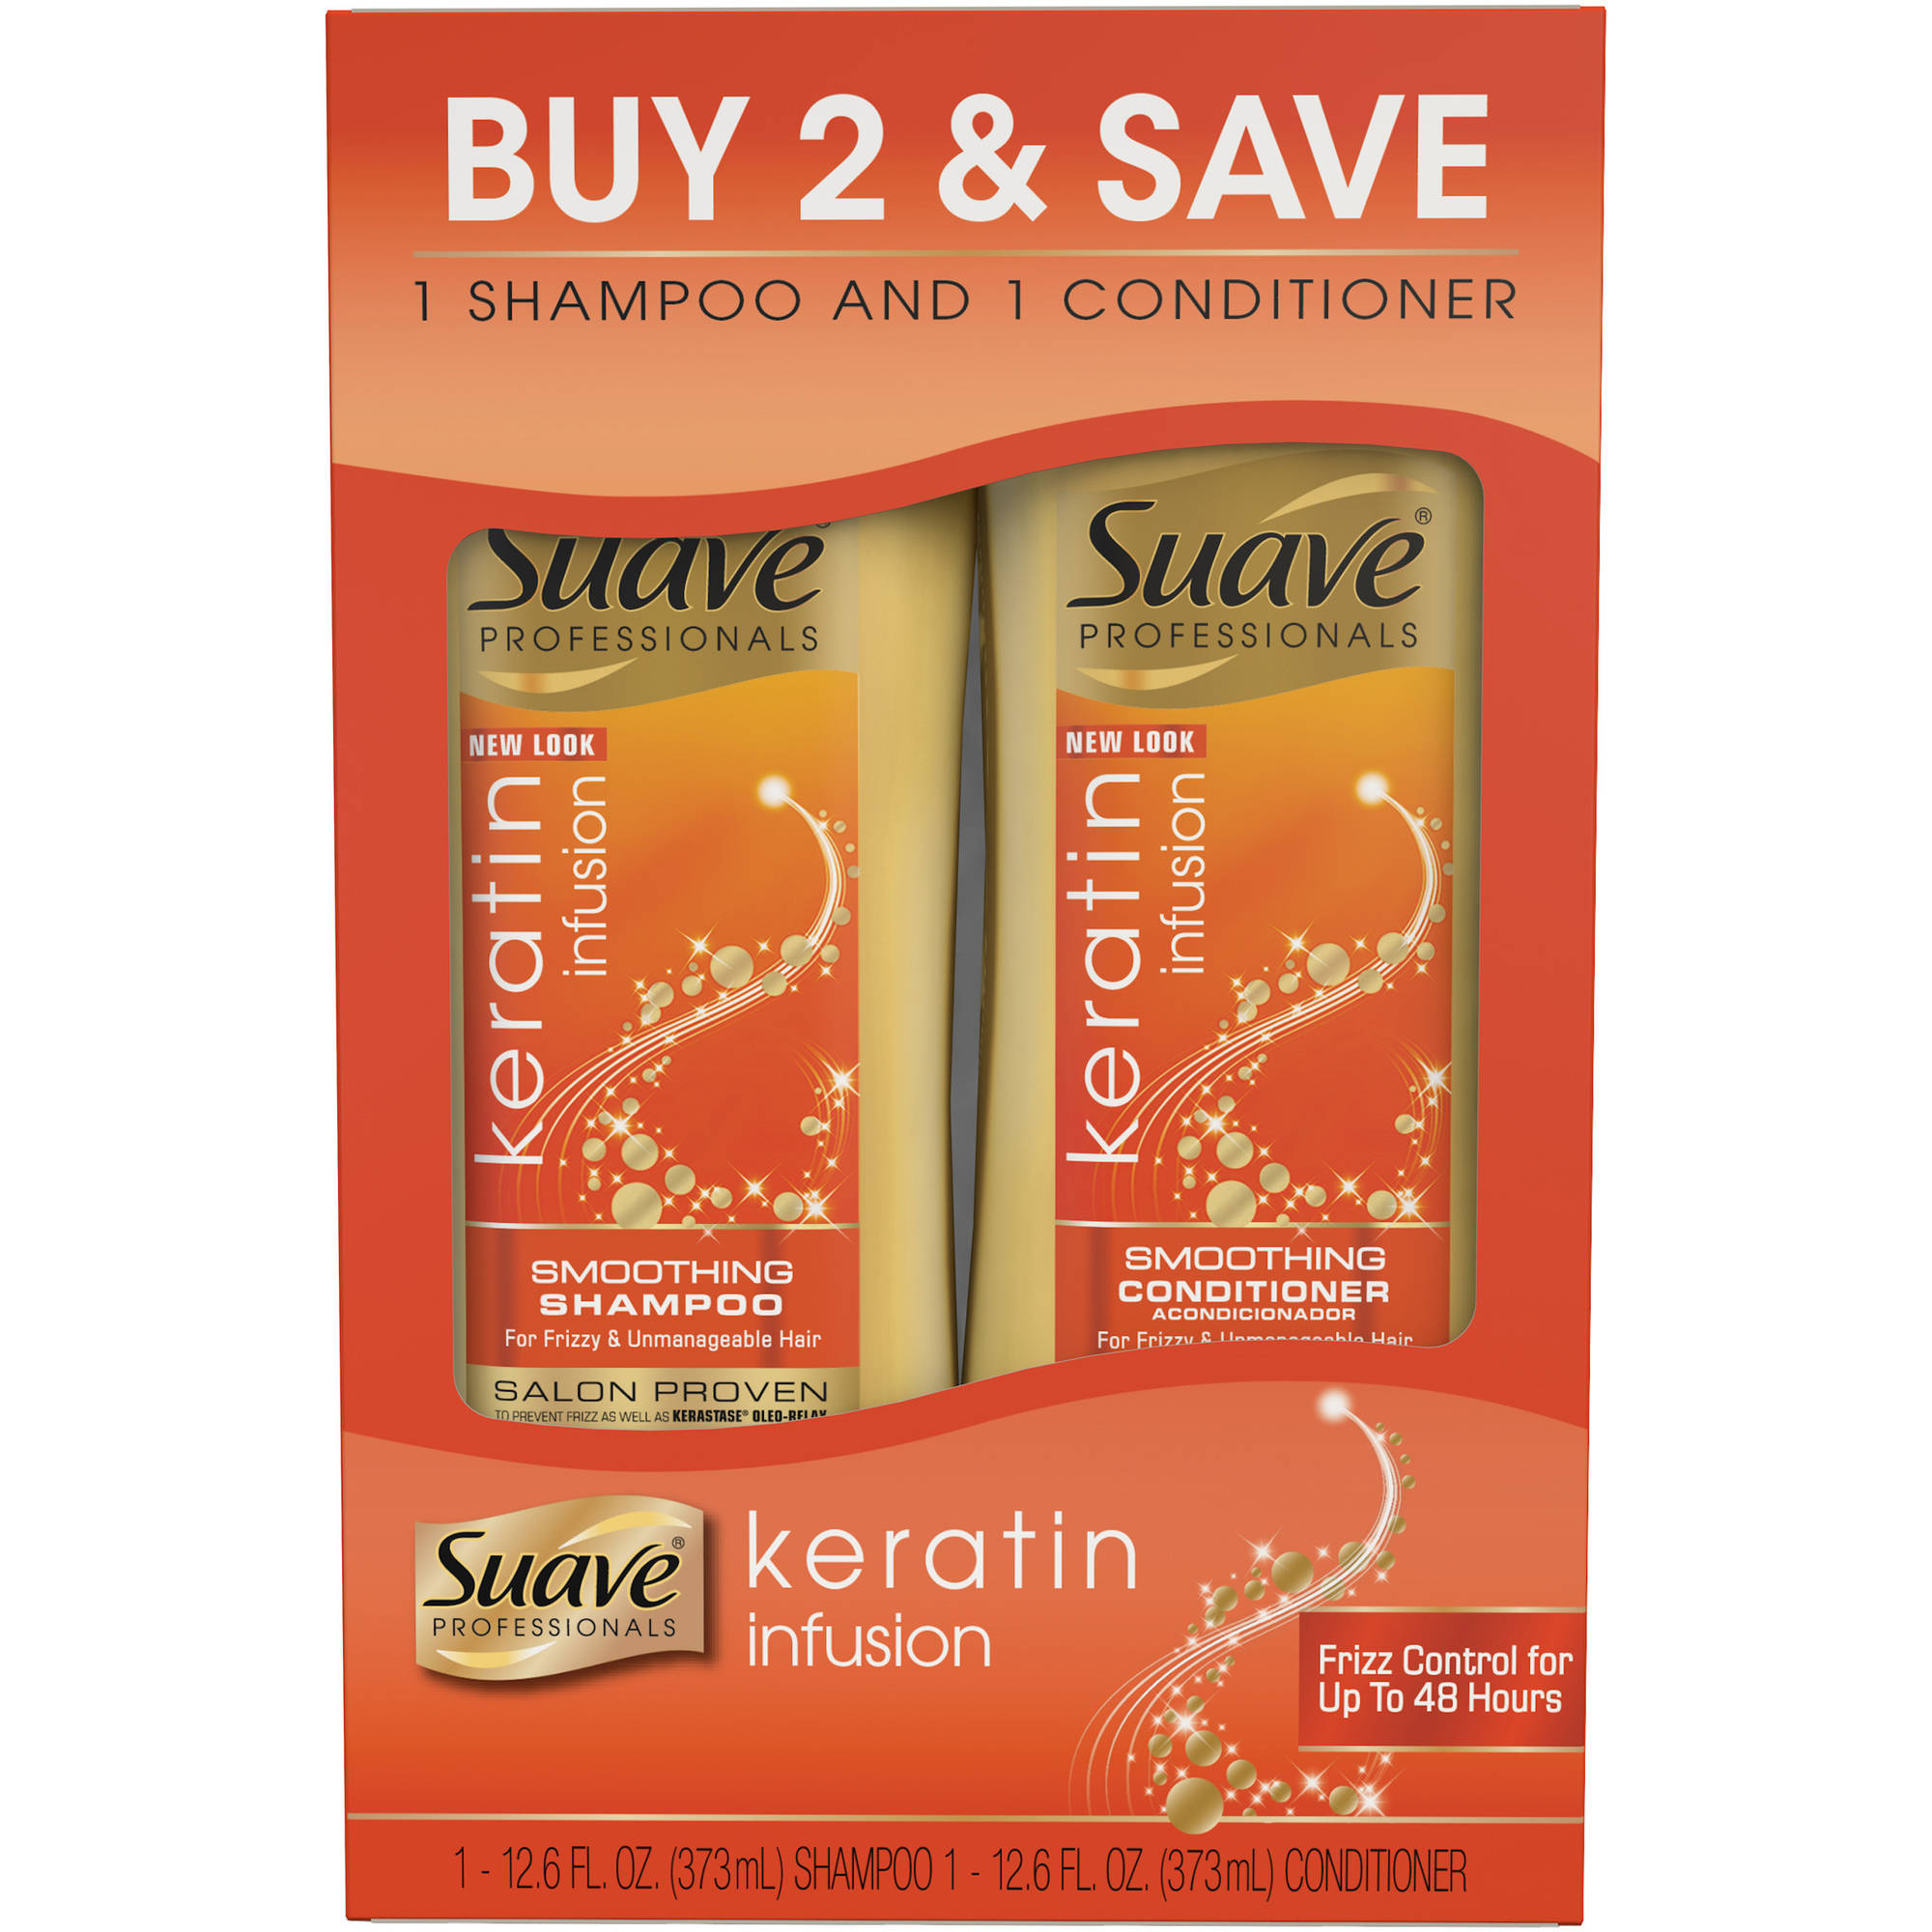 Suave Professionals Keratin Infusion Smoothing Shampoo and Conditioner, 12.6 oz, Pack of 2